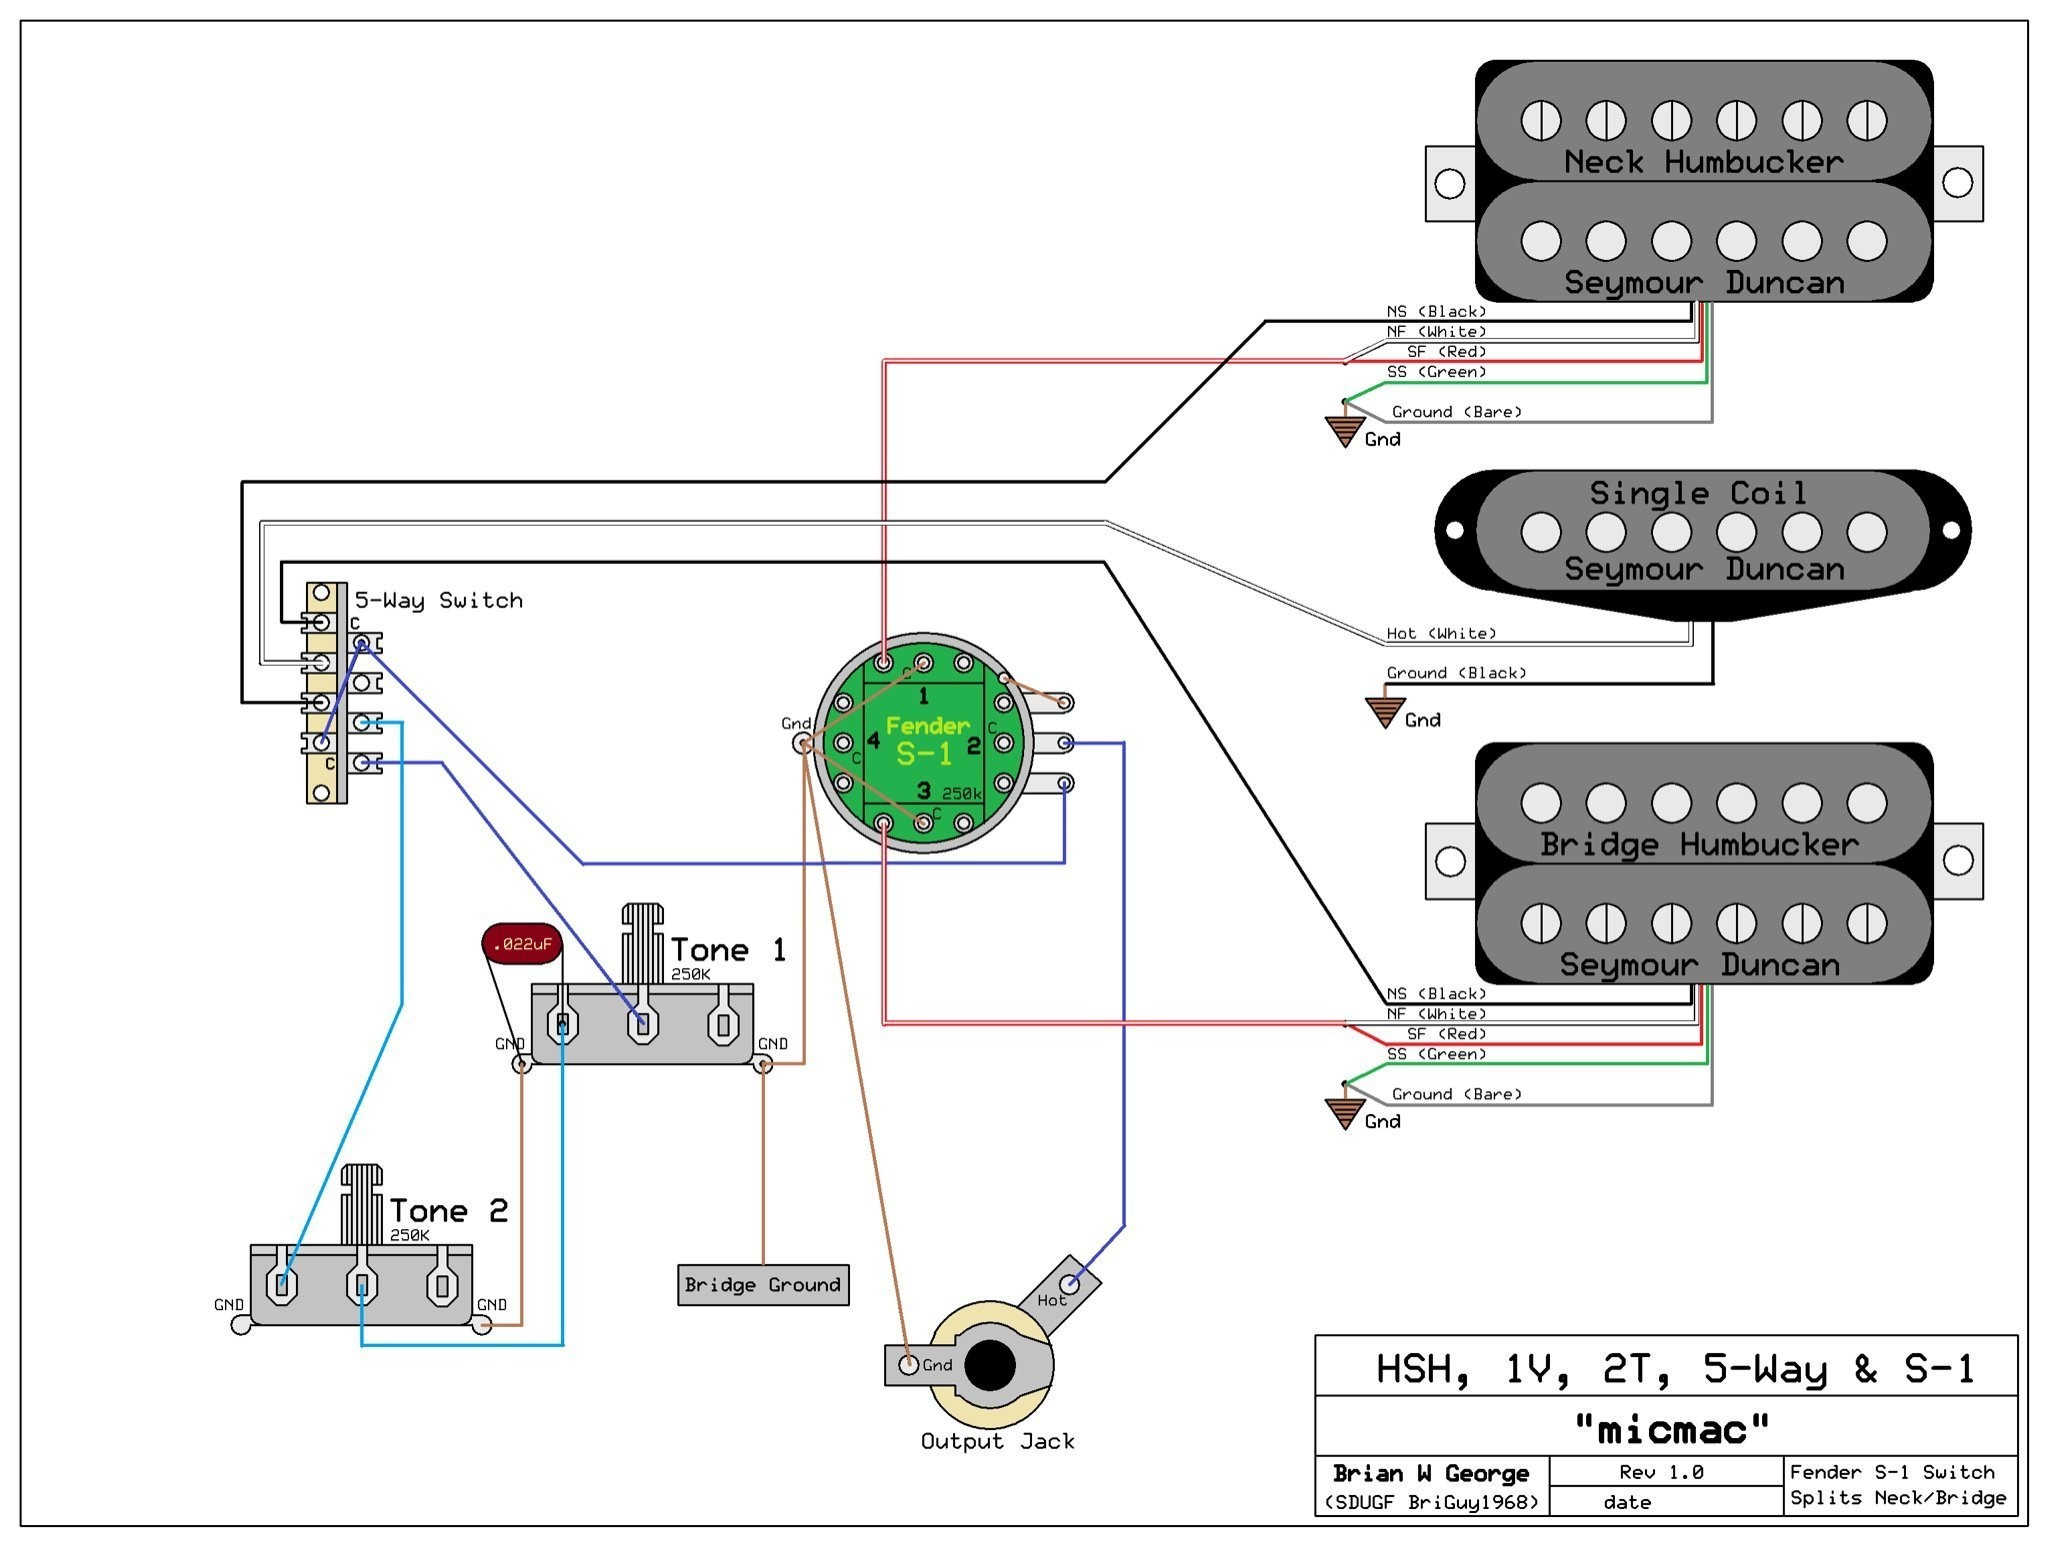 Humbucker Wiring Diagram 3 Way Switch from static-cdn.imageservice.cloud